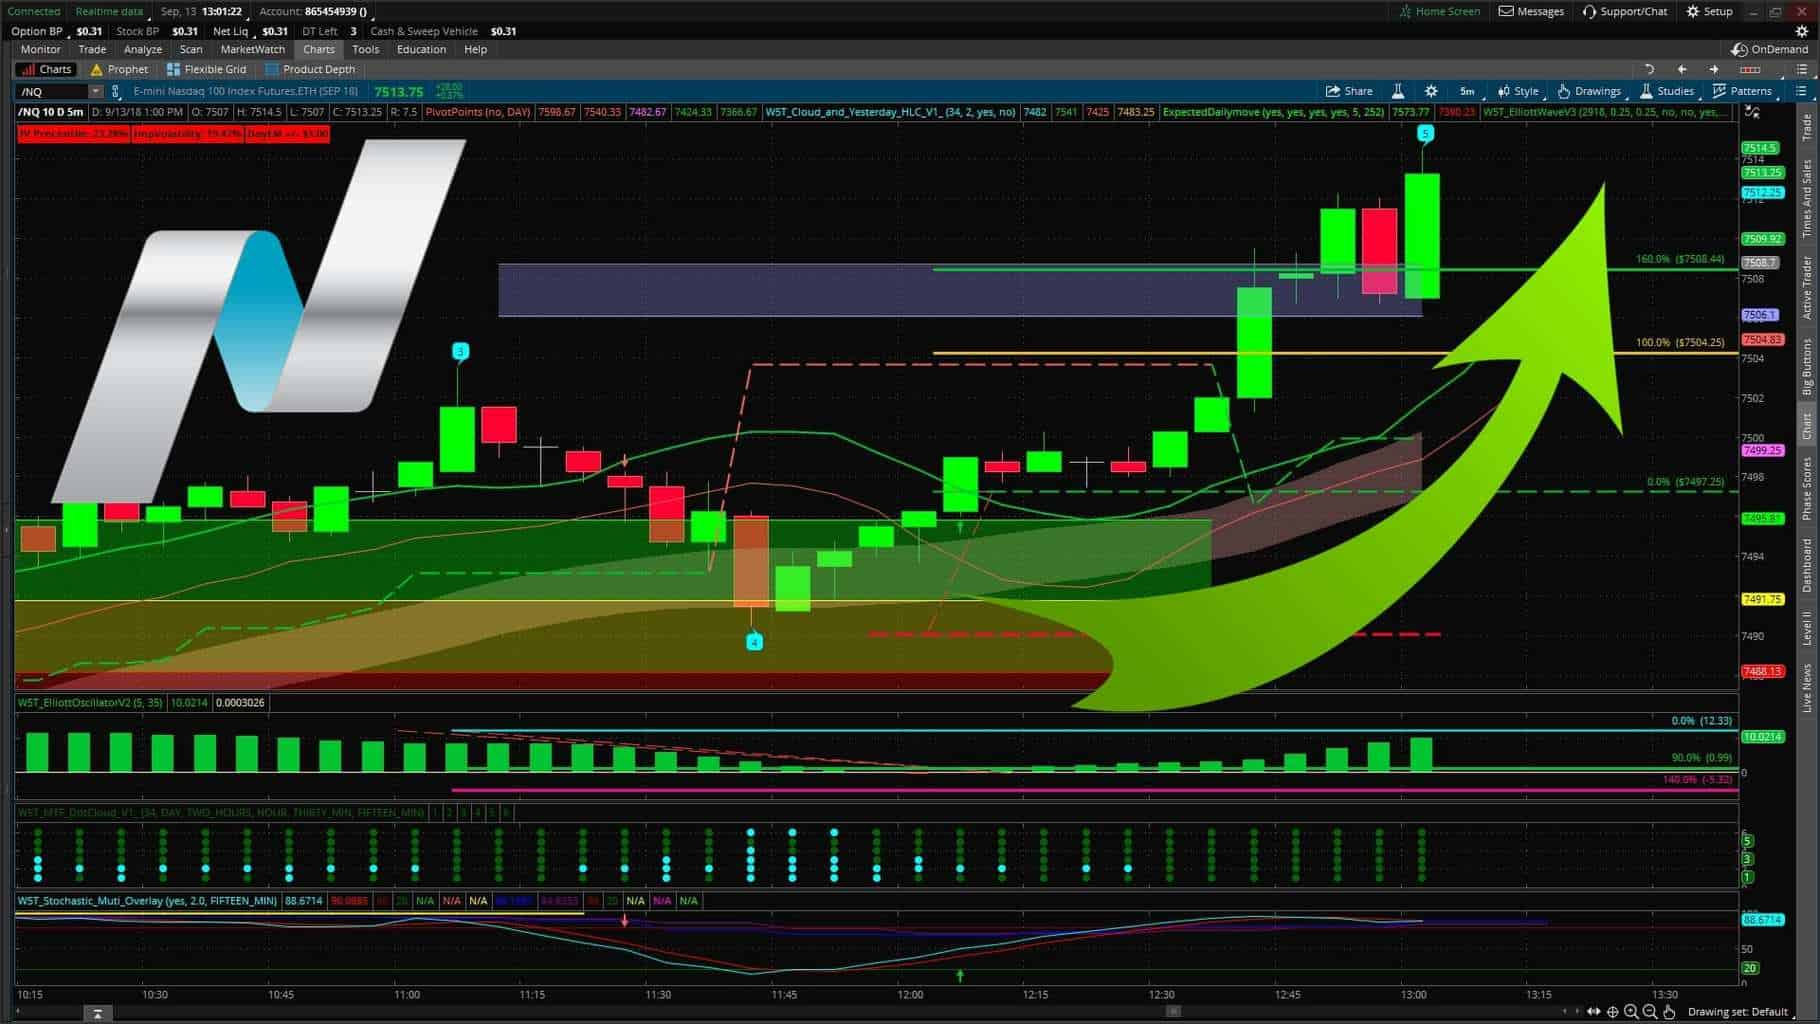 Day Trading the 5th with Futures - NQ Trading Journal